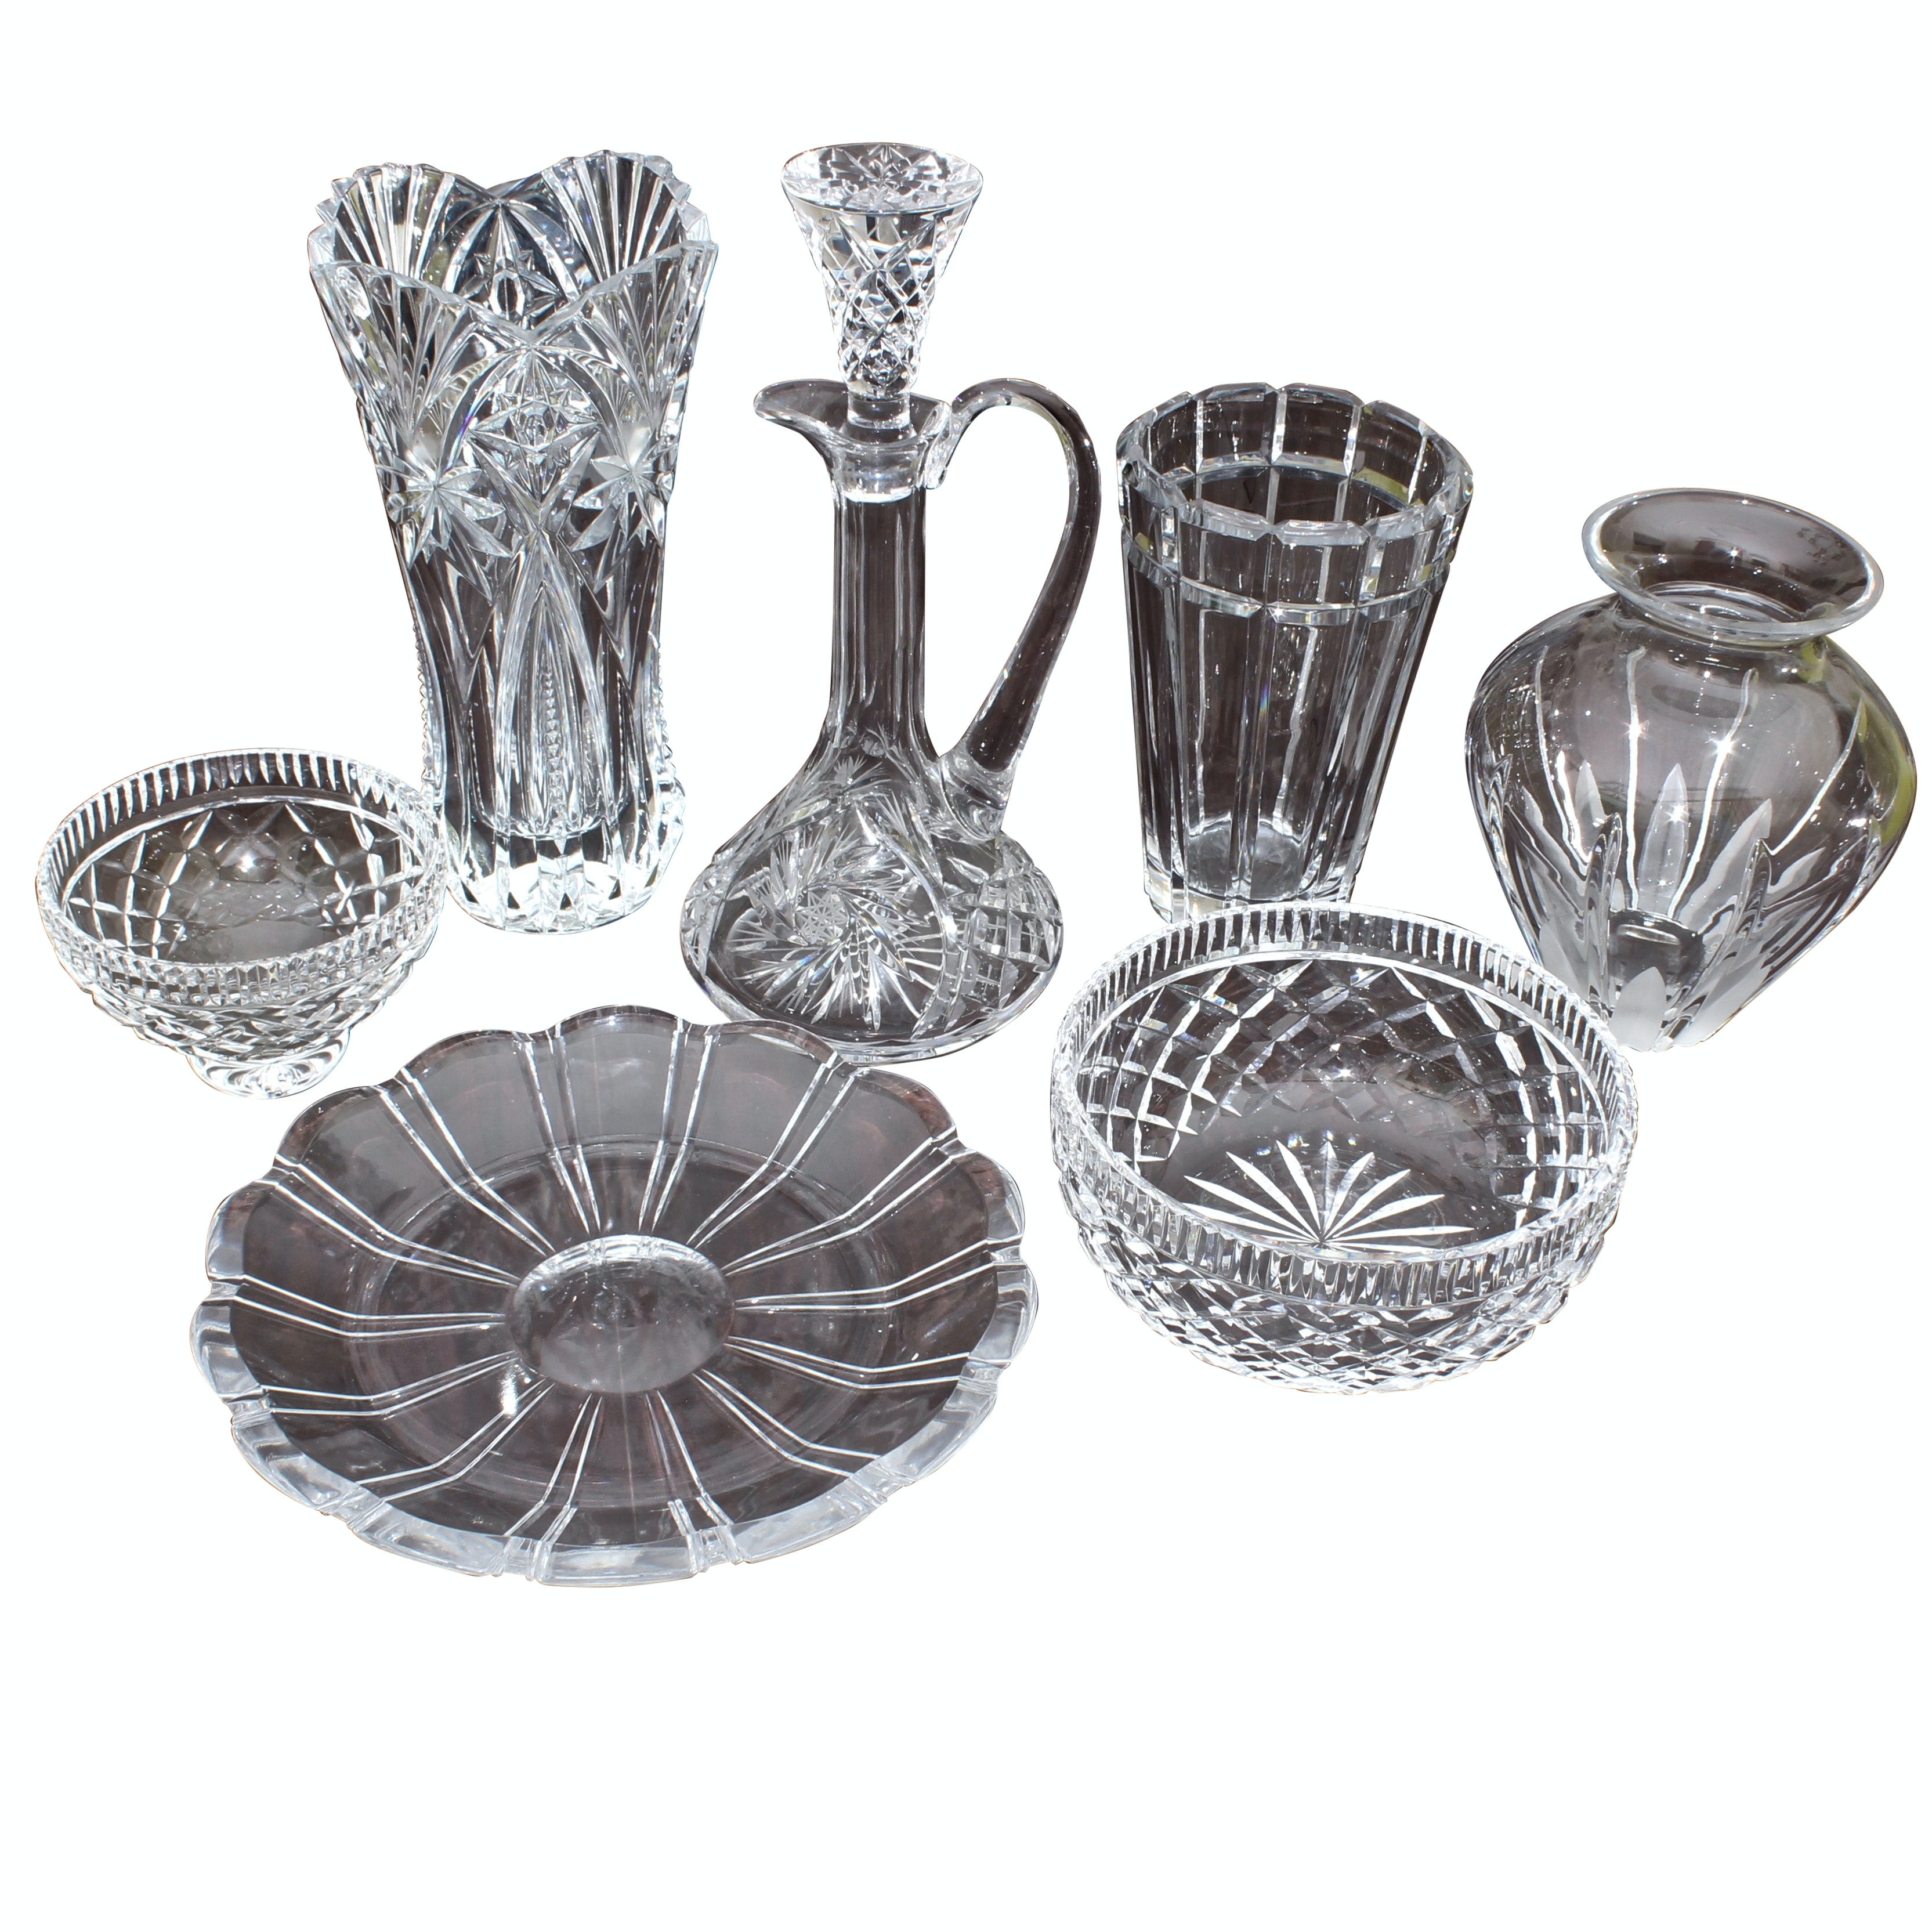 Lead Crystal Including Waterford Crystal and Atlantis